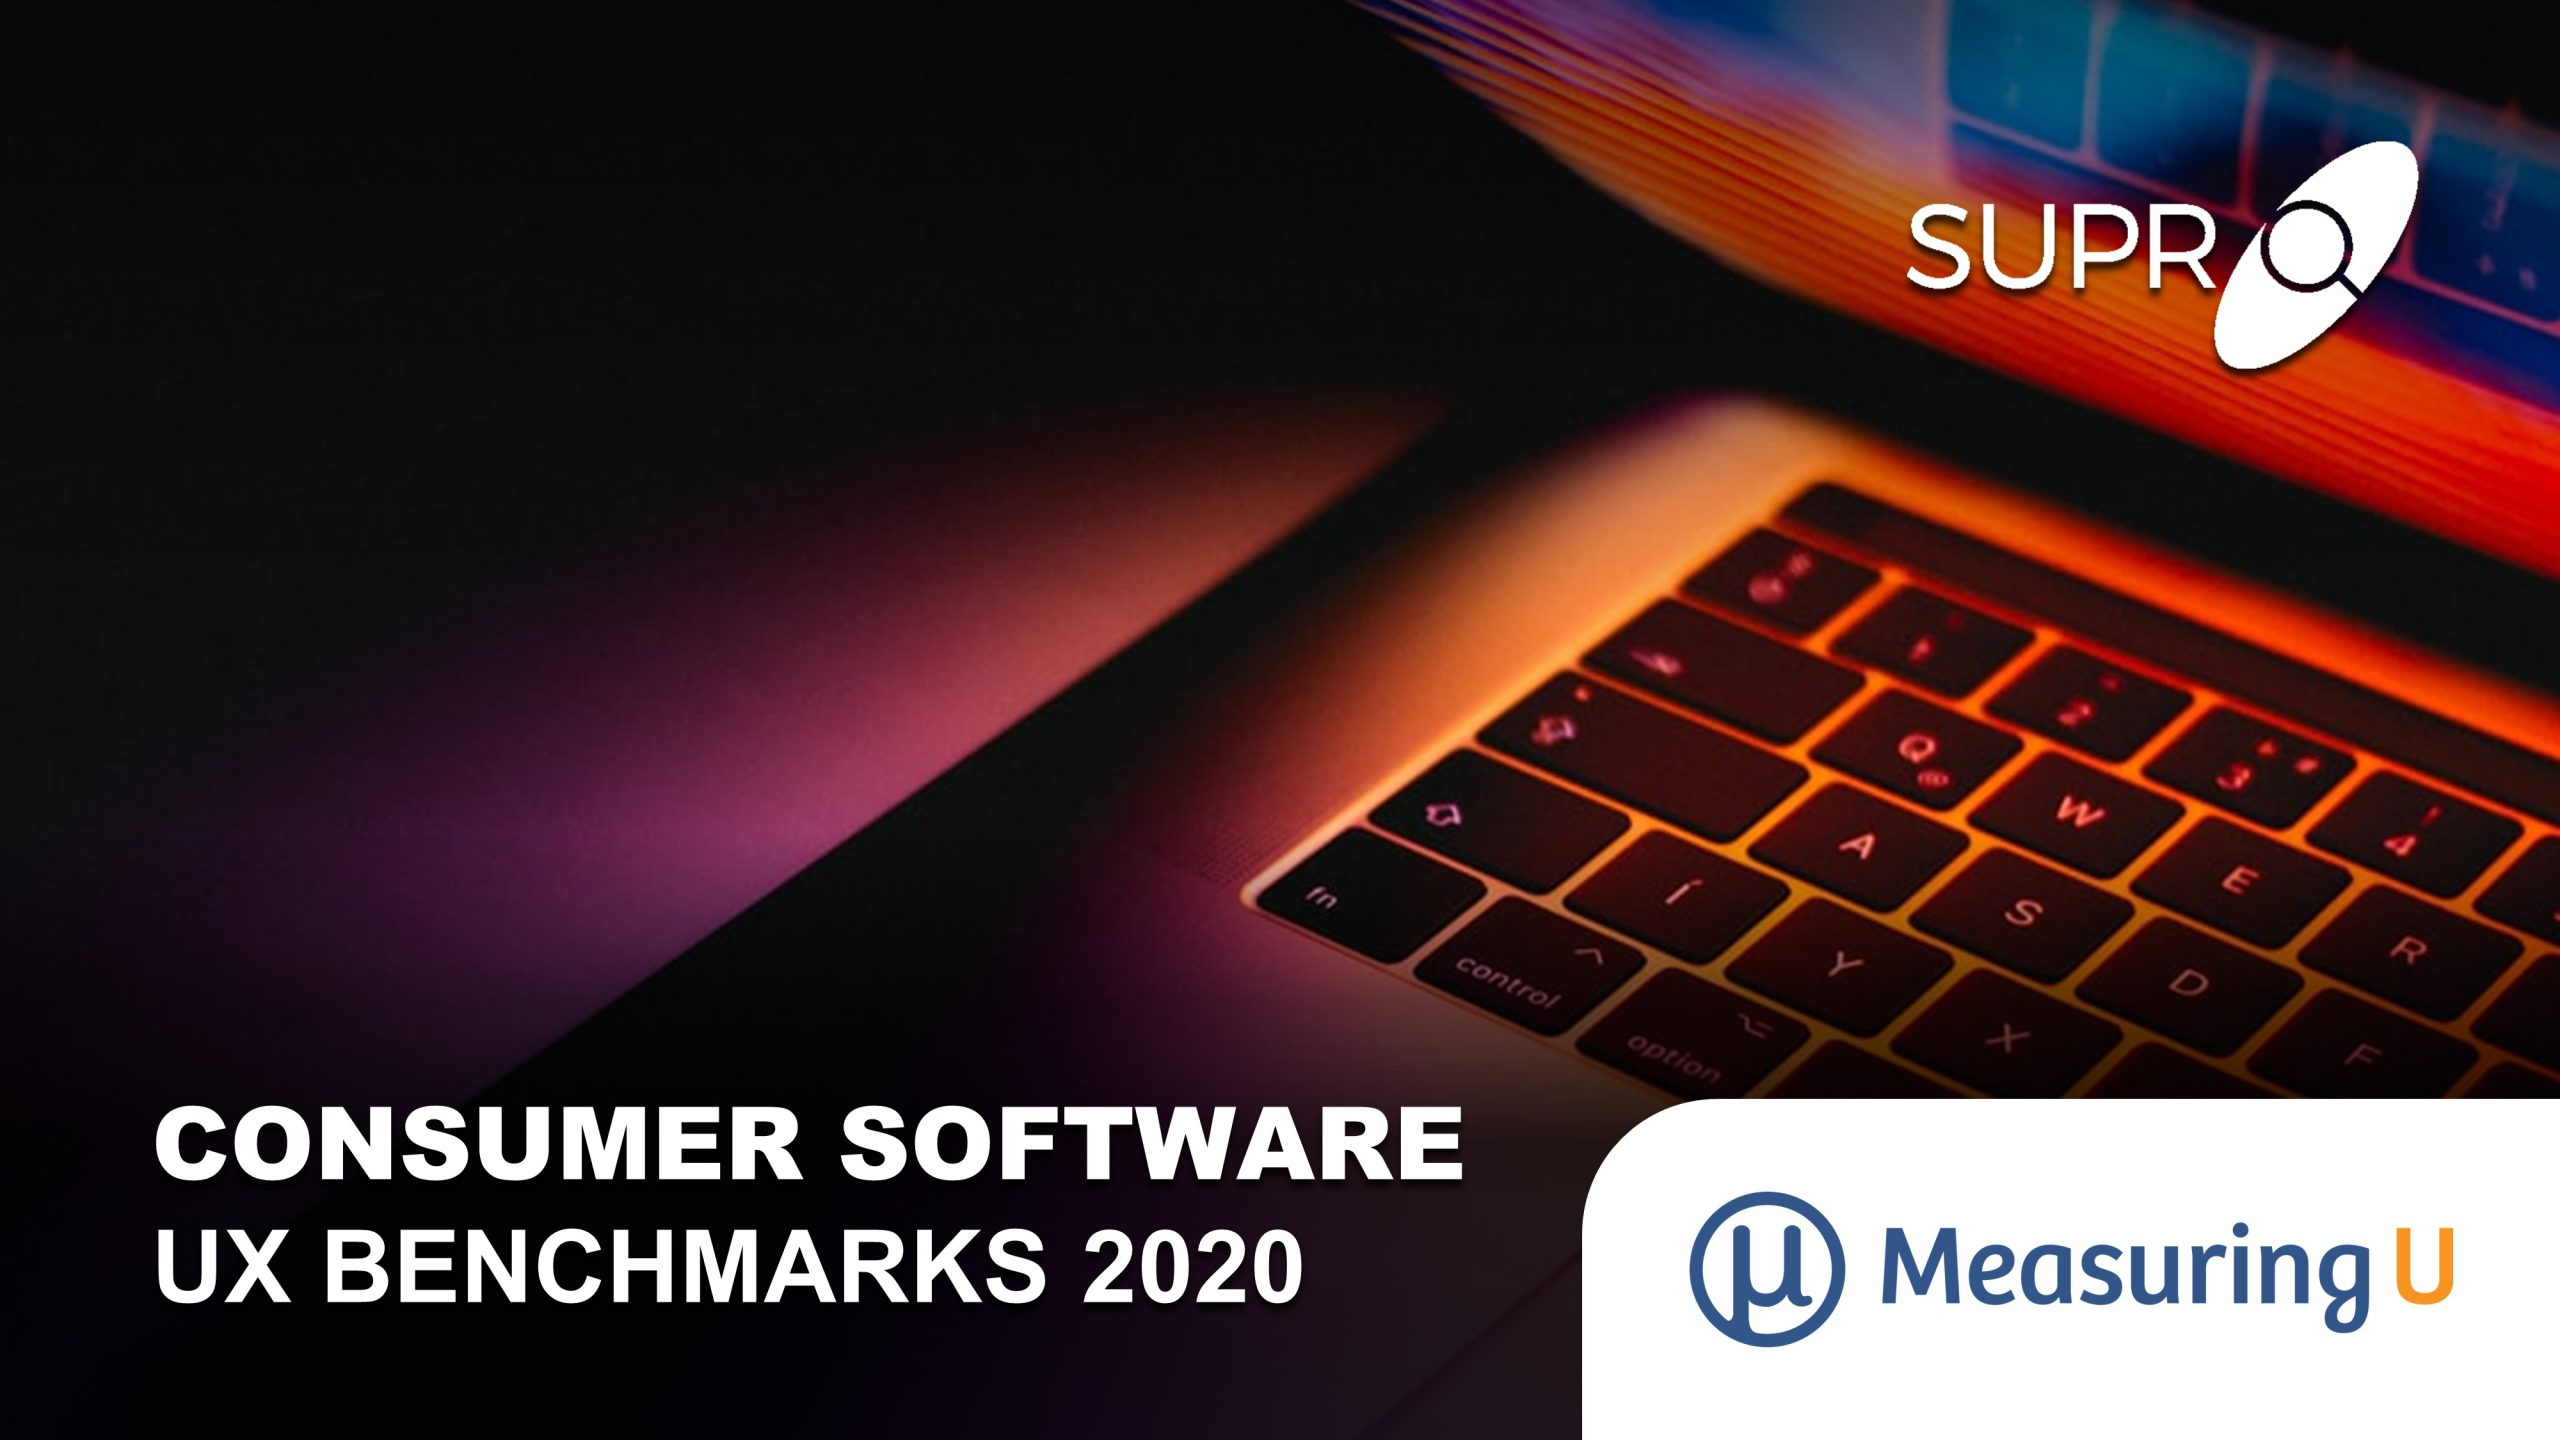 Consumer Software UX & NPS Benchmarks 2020